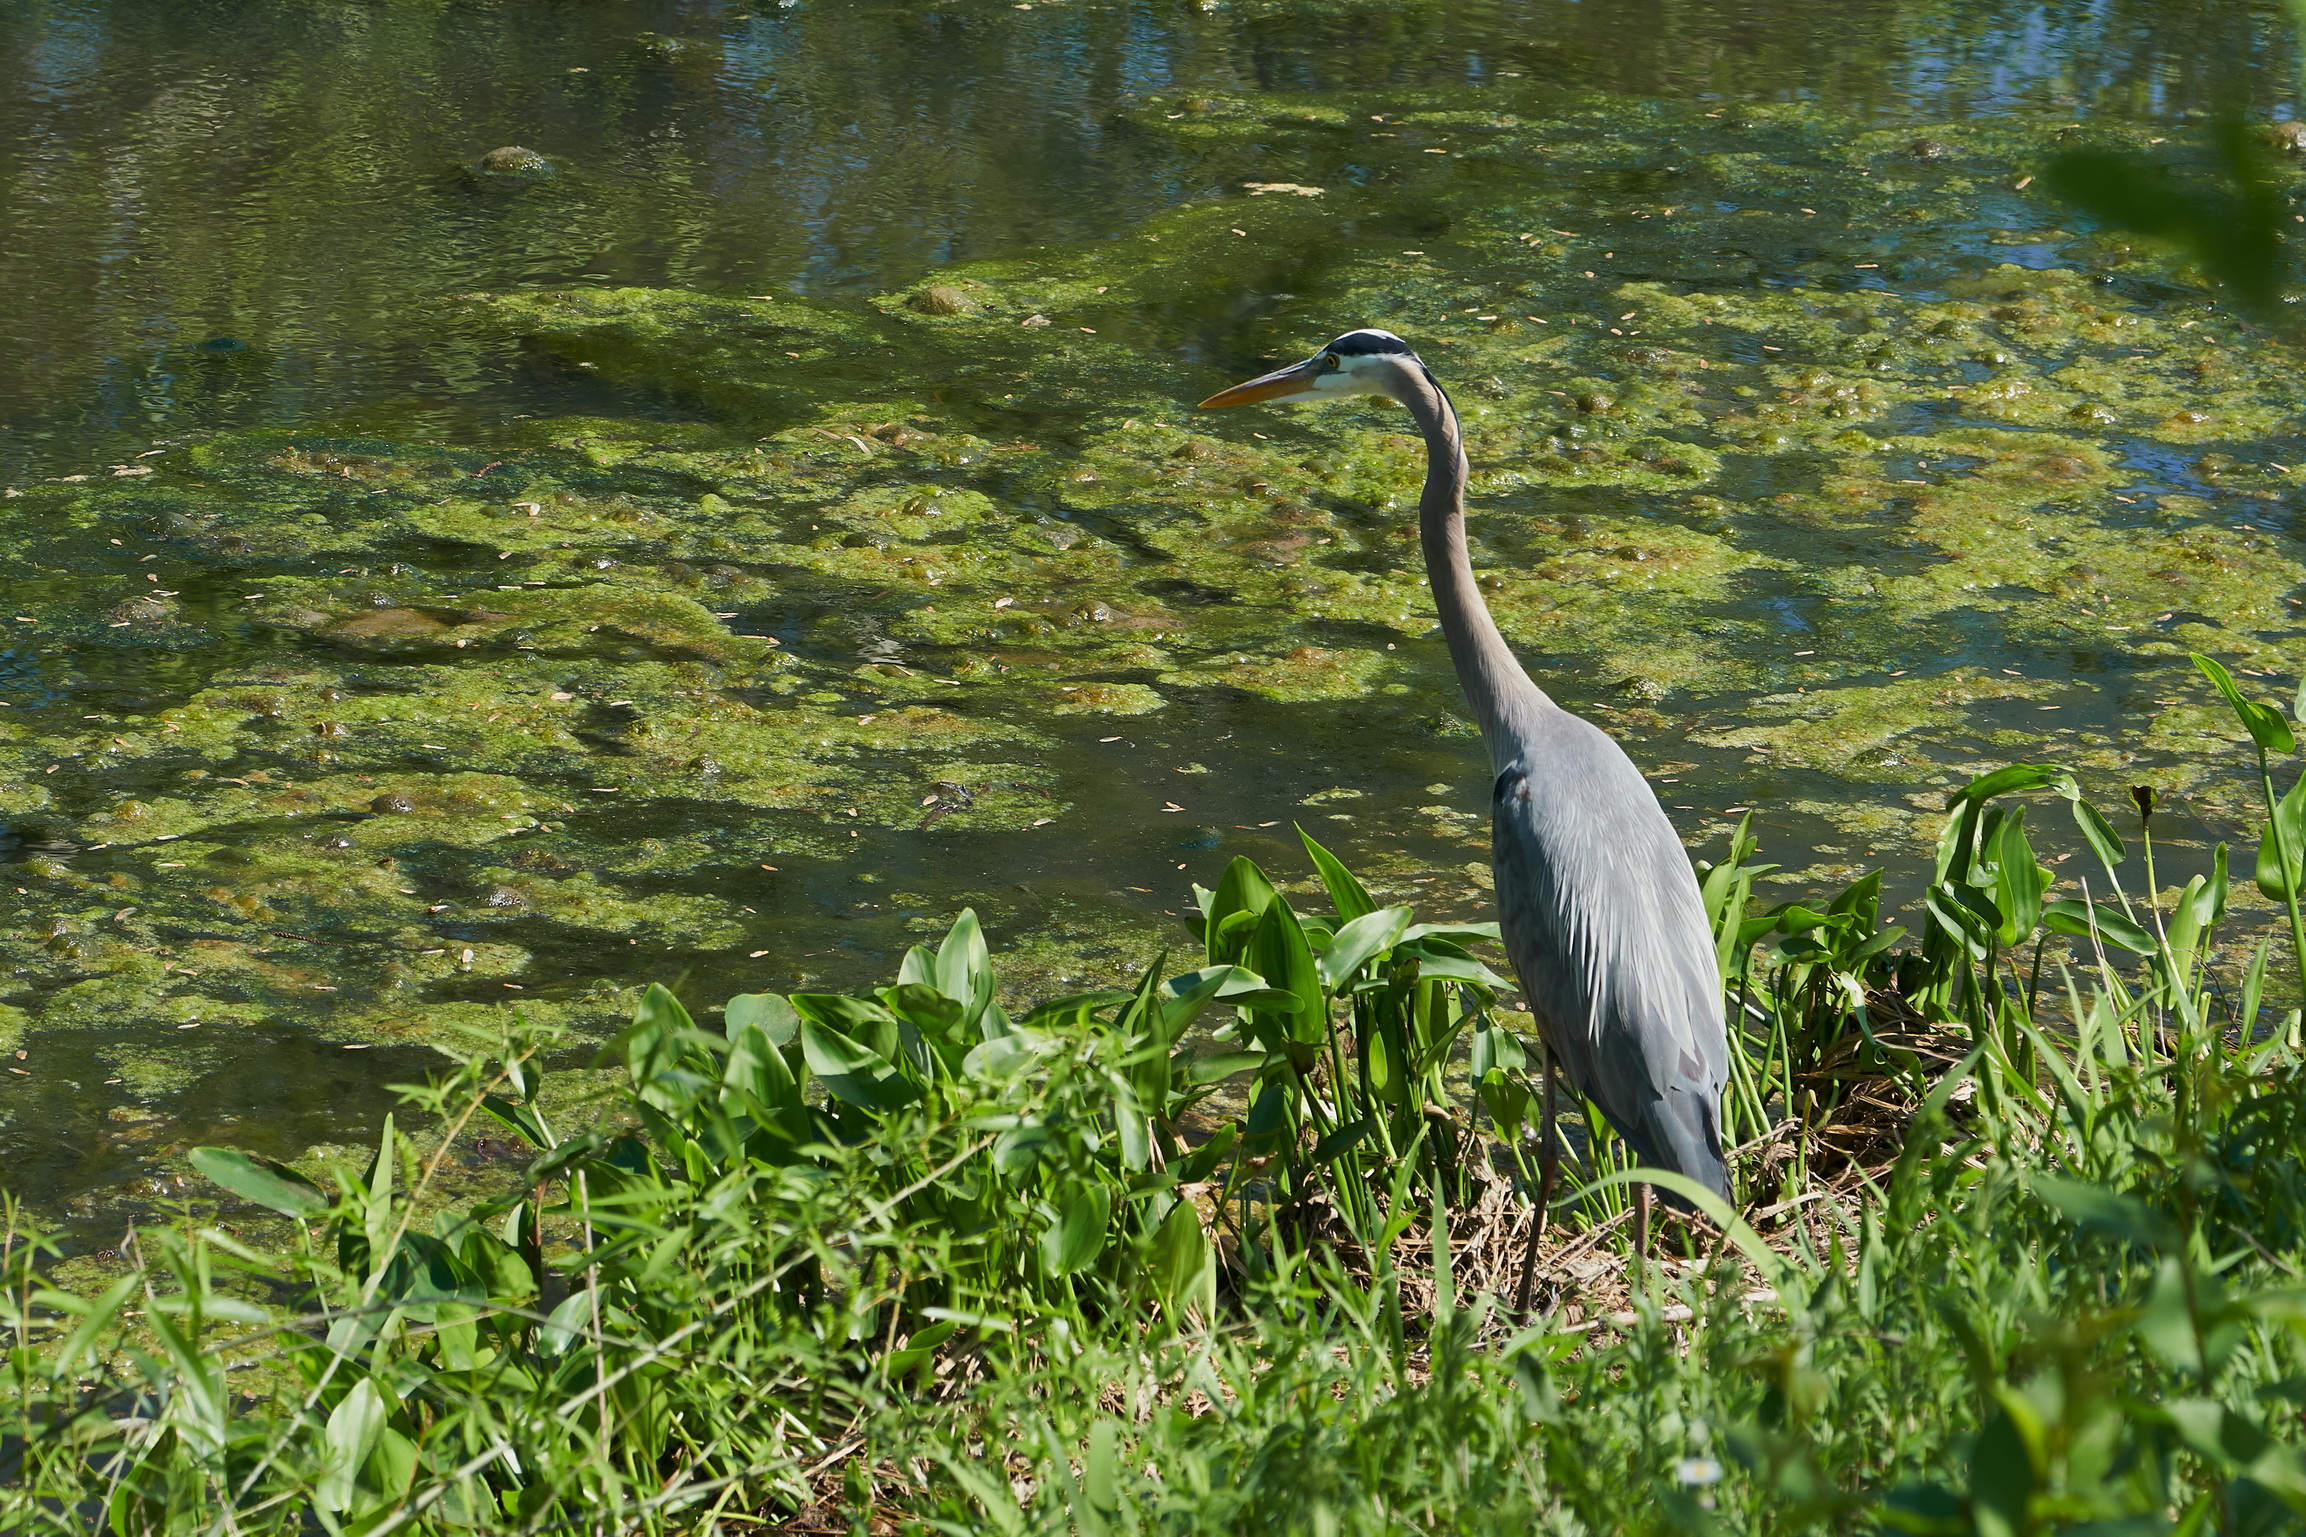 Great blue heron 1 May 09 2018_resize.jpg